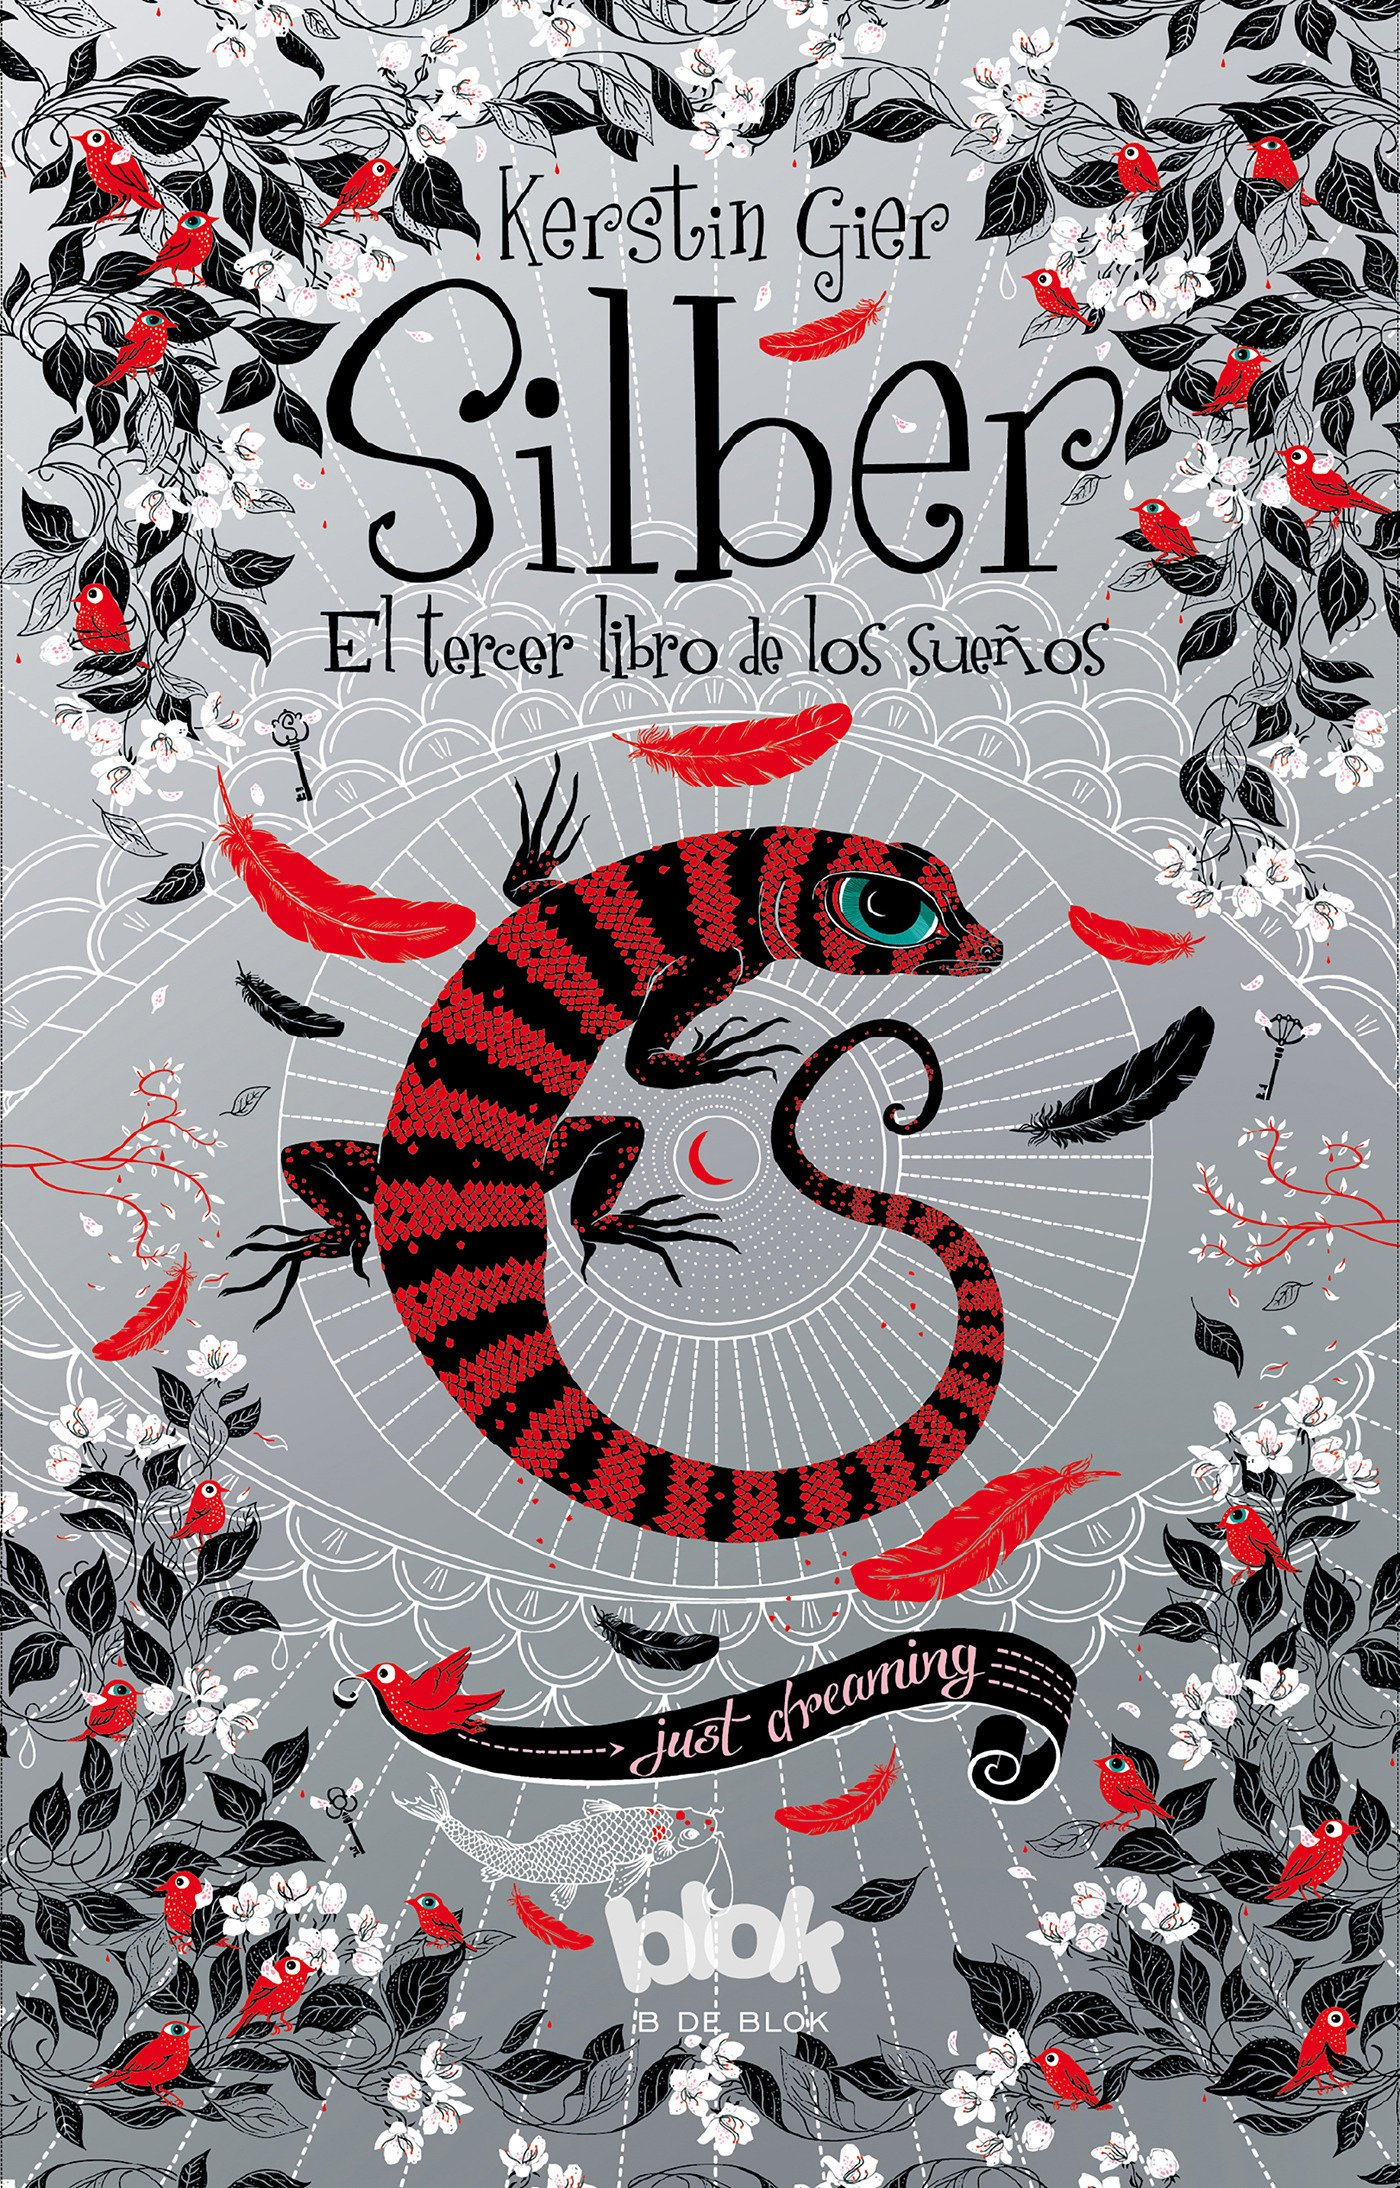 El tercer libro de los sueños / Silber 3. The Third Book of Dreams (Silber: The Book of Dreams) (Spanish Edition) (9788416075935): Kerstin Gier: Books